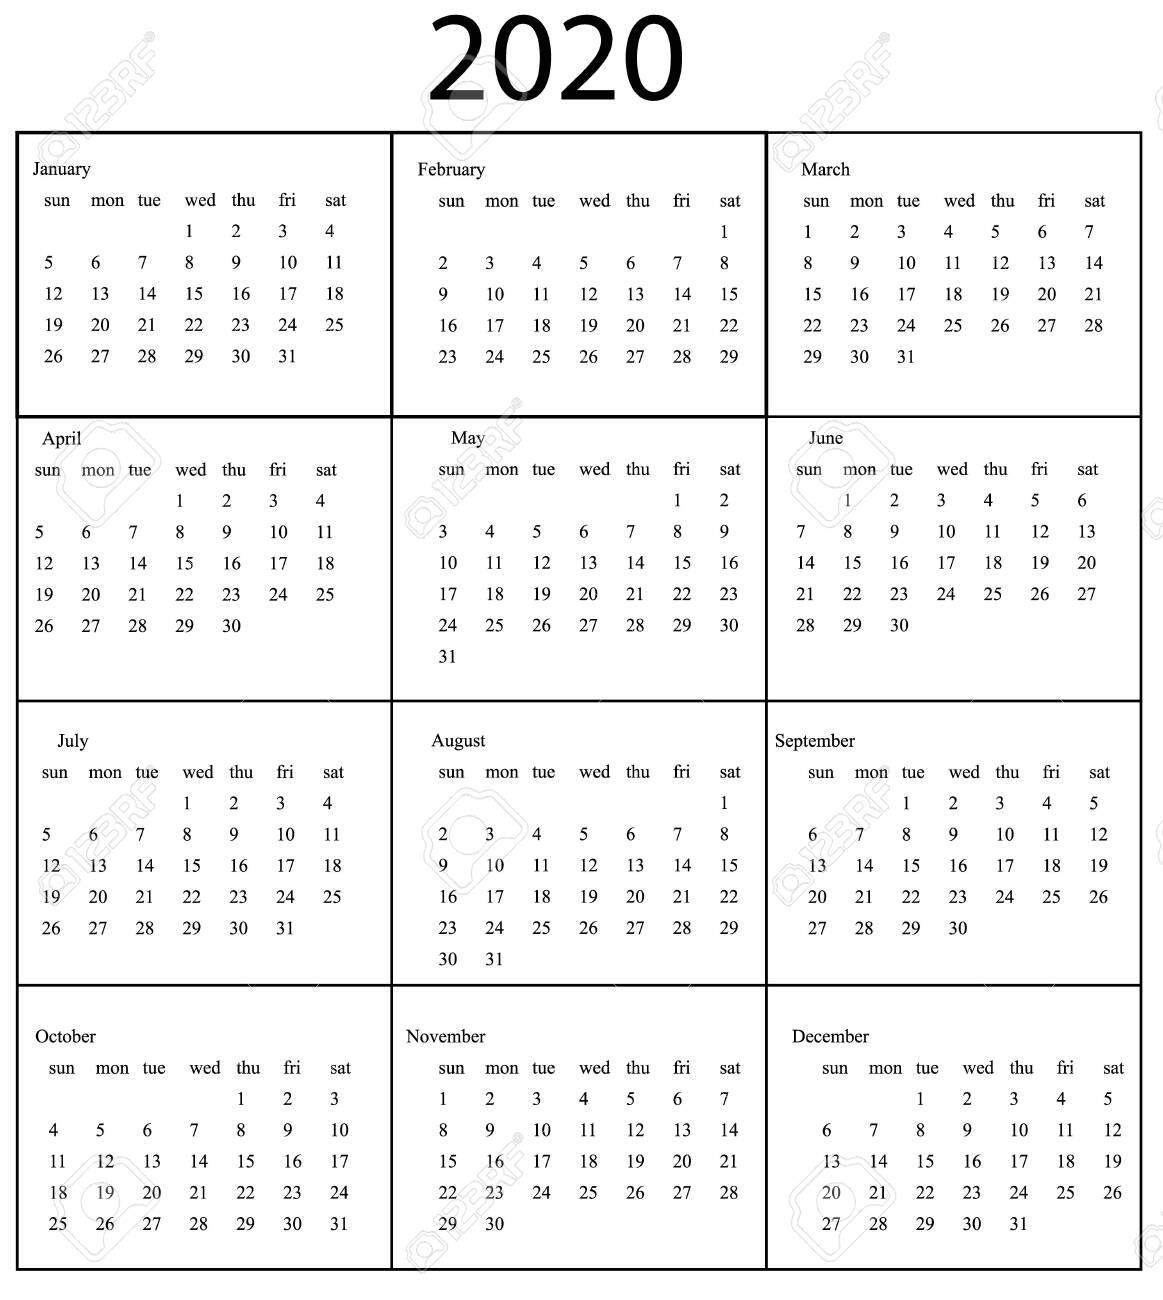 Stock Photo intended for Sunday To Saturday Calendar 2020 Printable